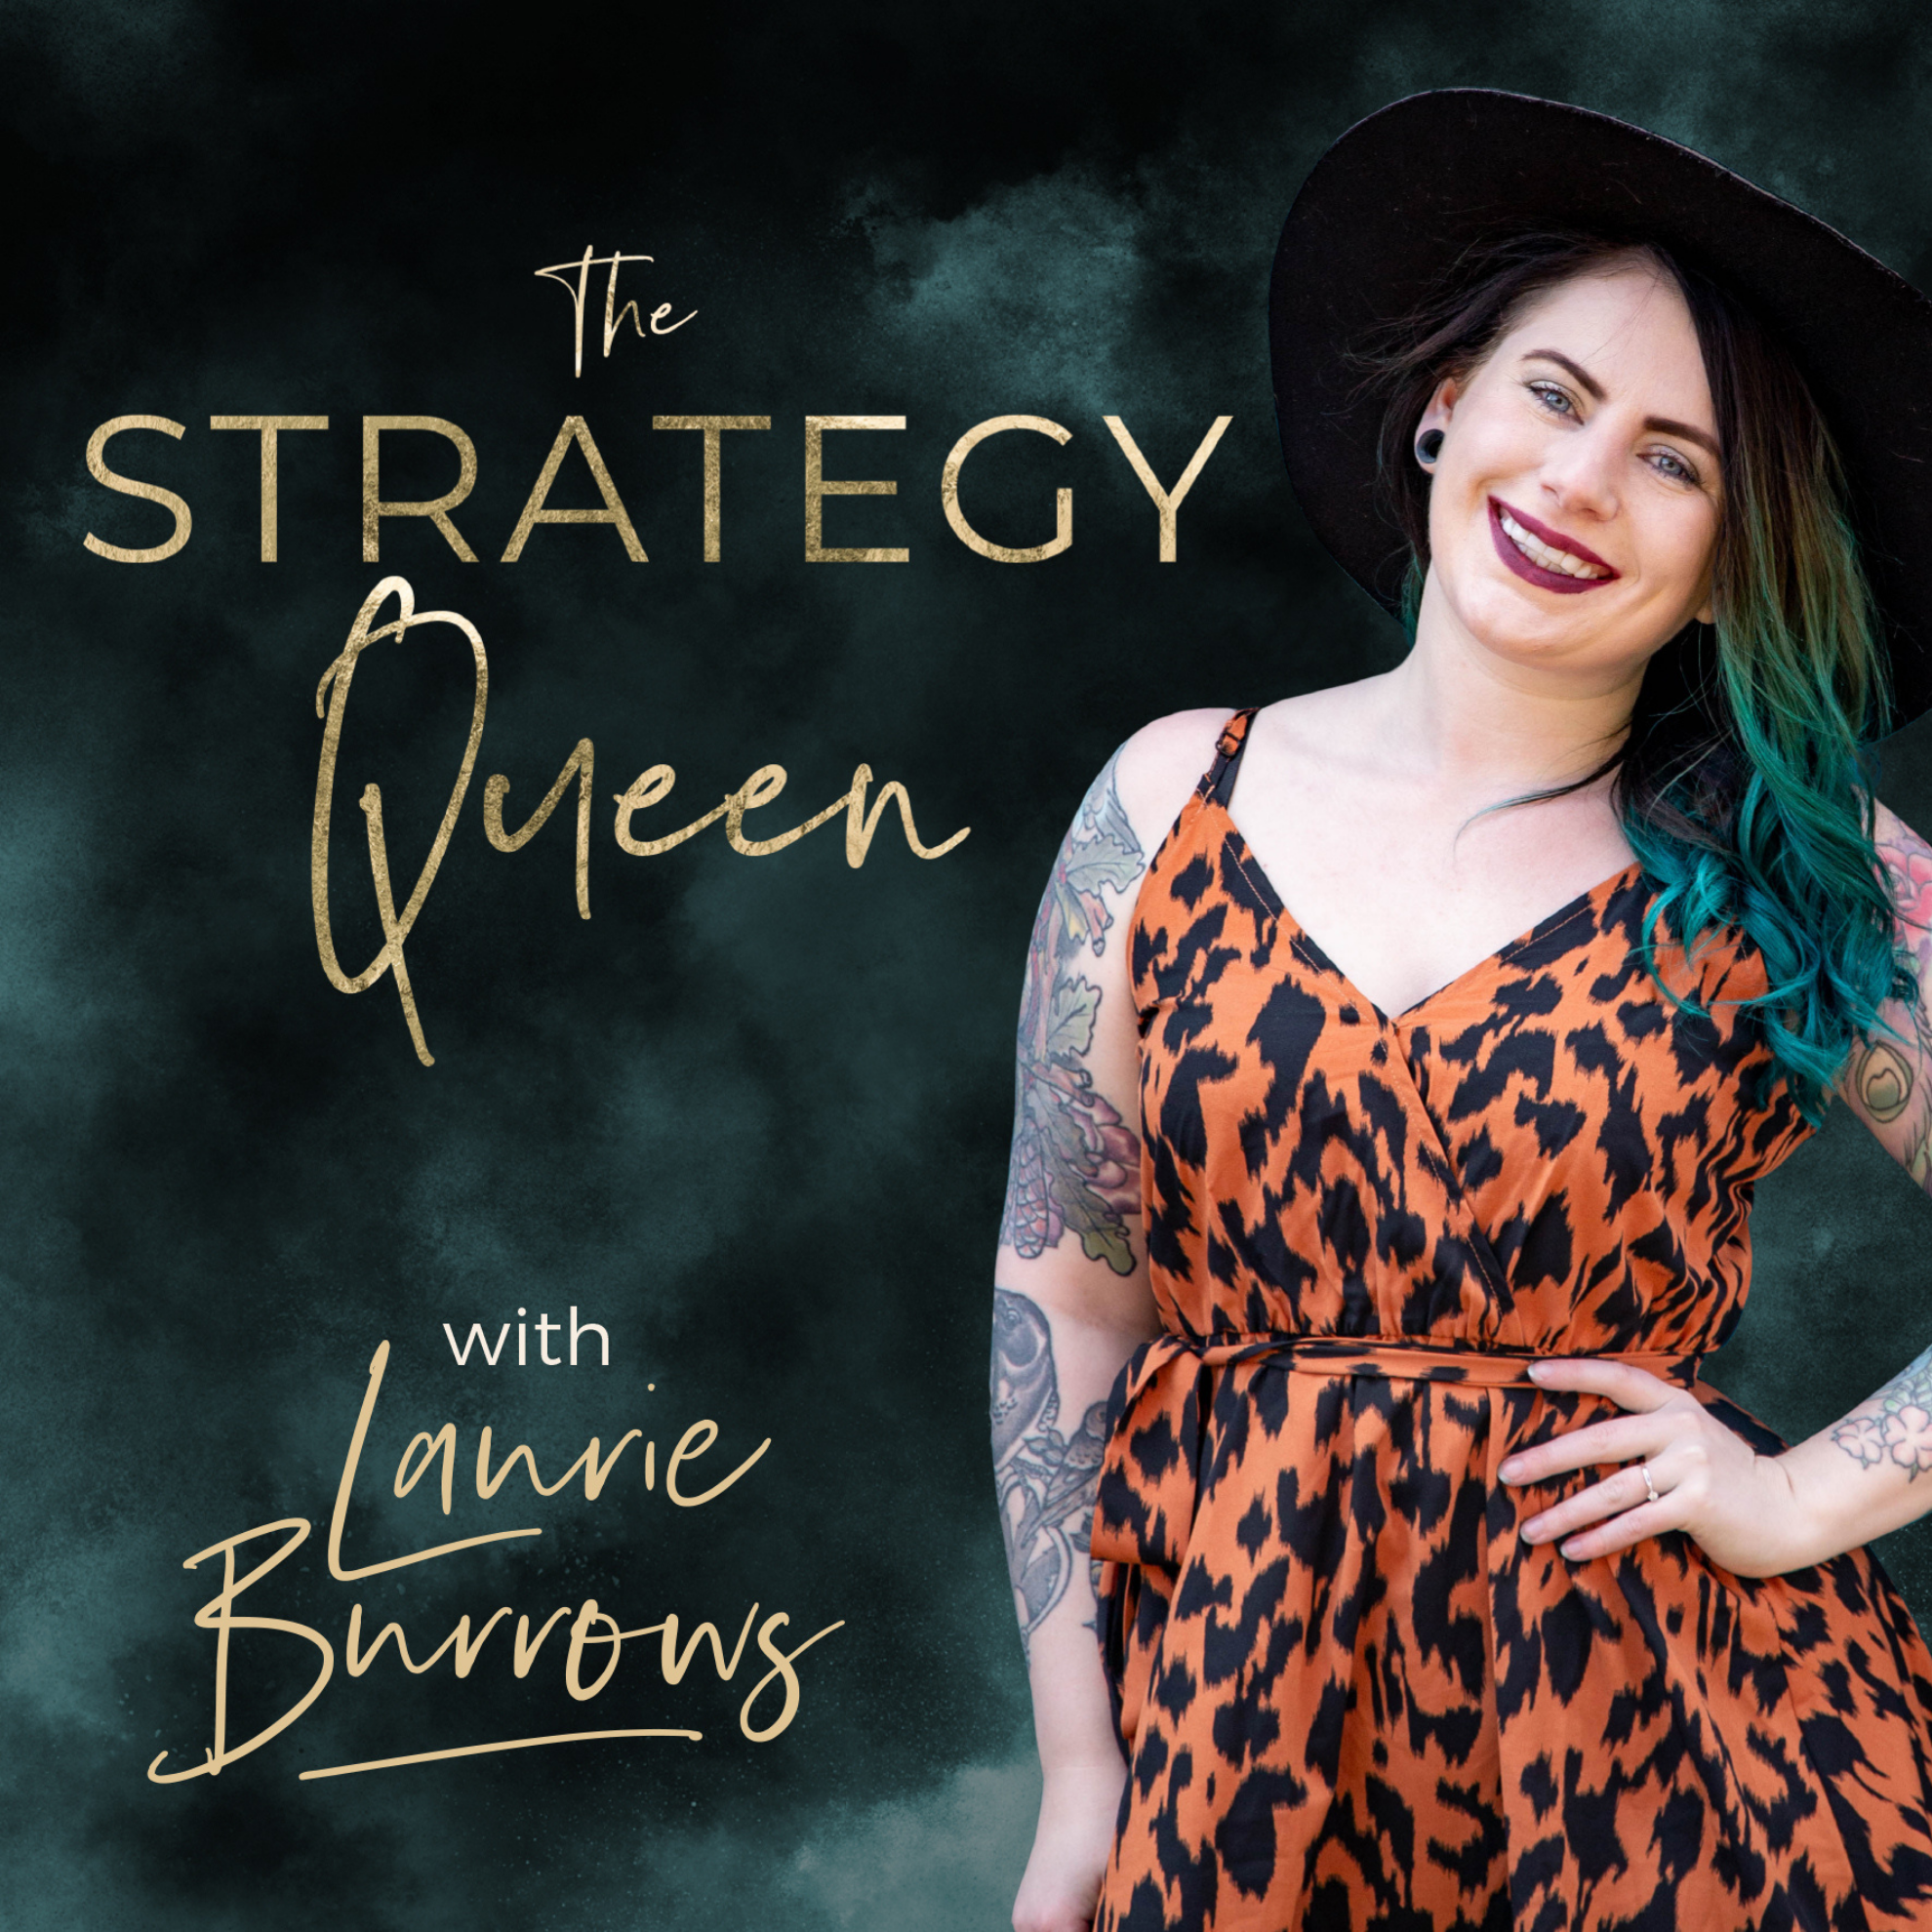 The Strategy Queen Podcast Laurie Burrows